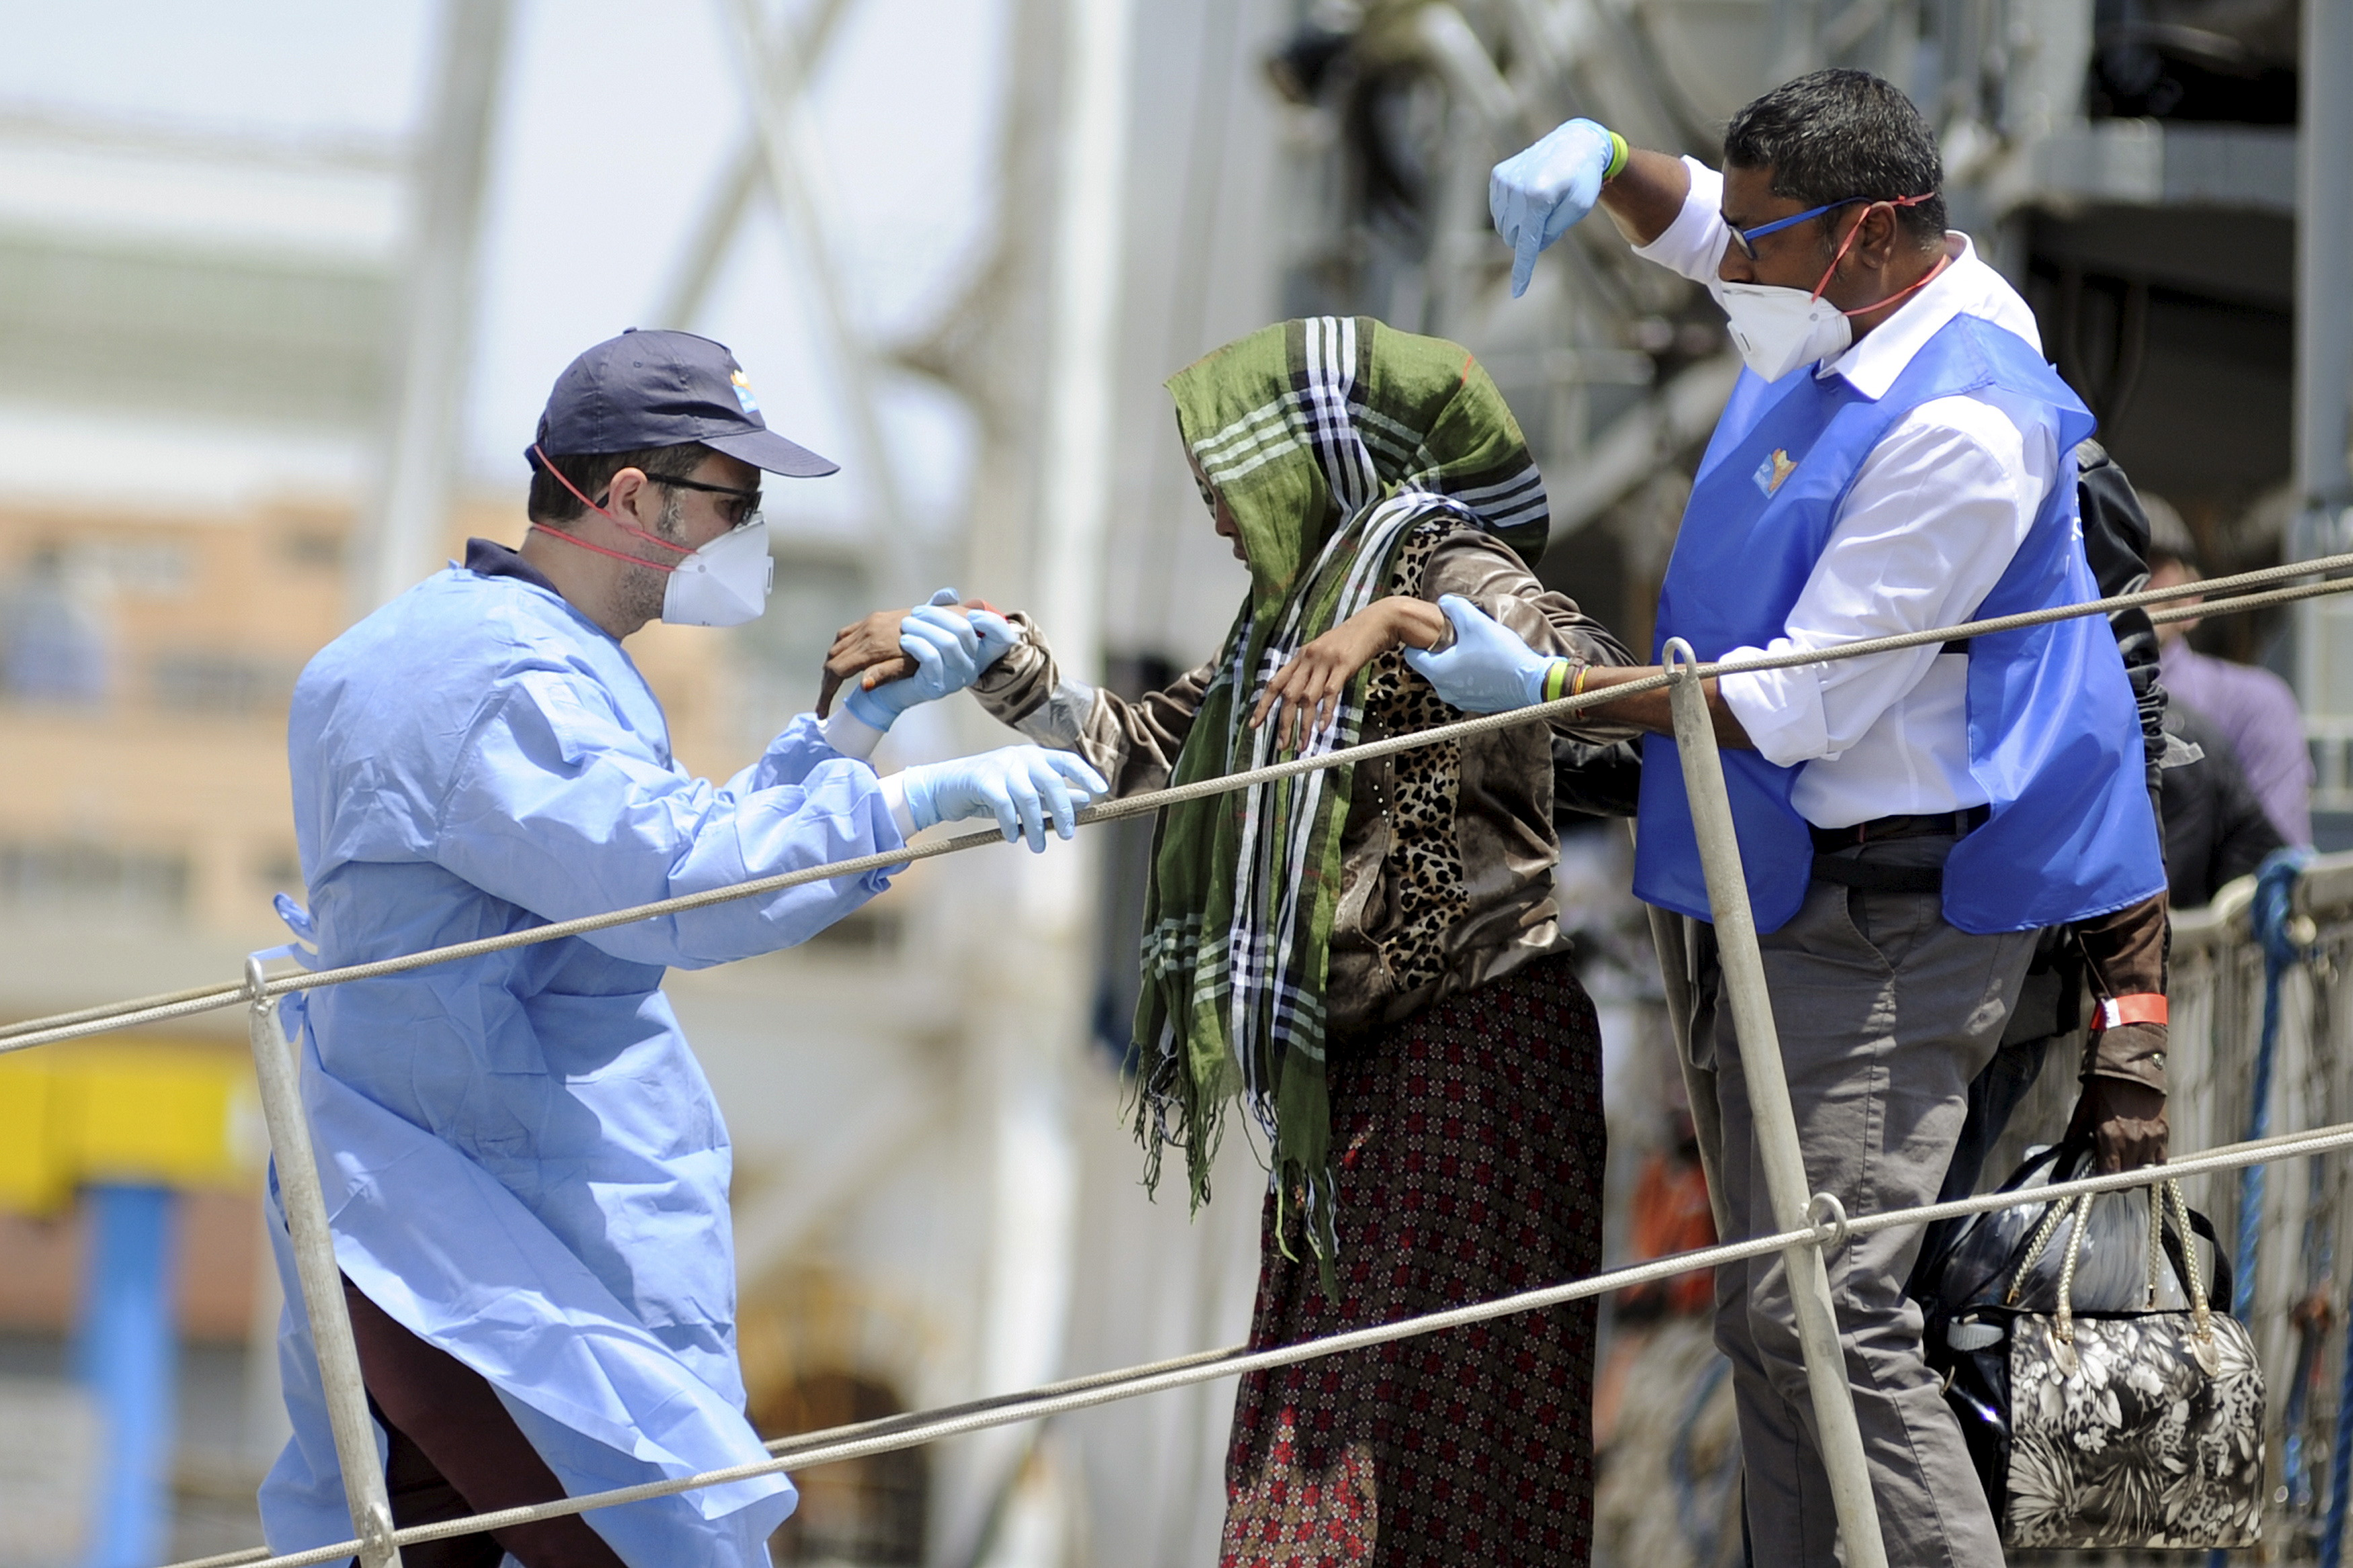 A woman is helped by medical staff as she disembarks from the Irish navy ship LE Eithne in the Sicilian harbour of Palermo, Italy, May 30, 2015. Photo by Guglielmo Mangiapane/Reuters